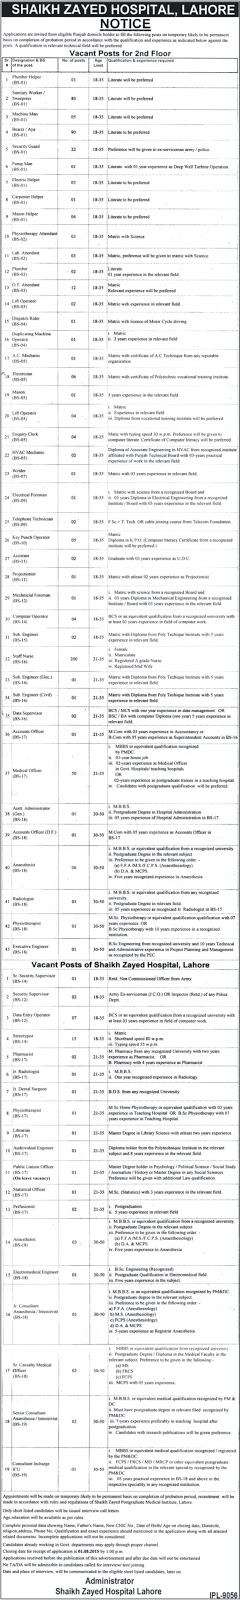 Jobs-shaikh-zayed-hospital-lahore